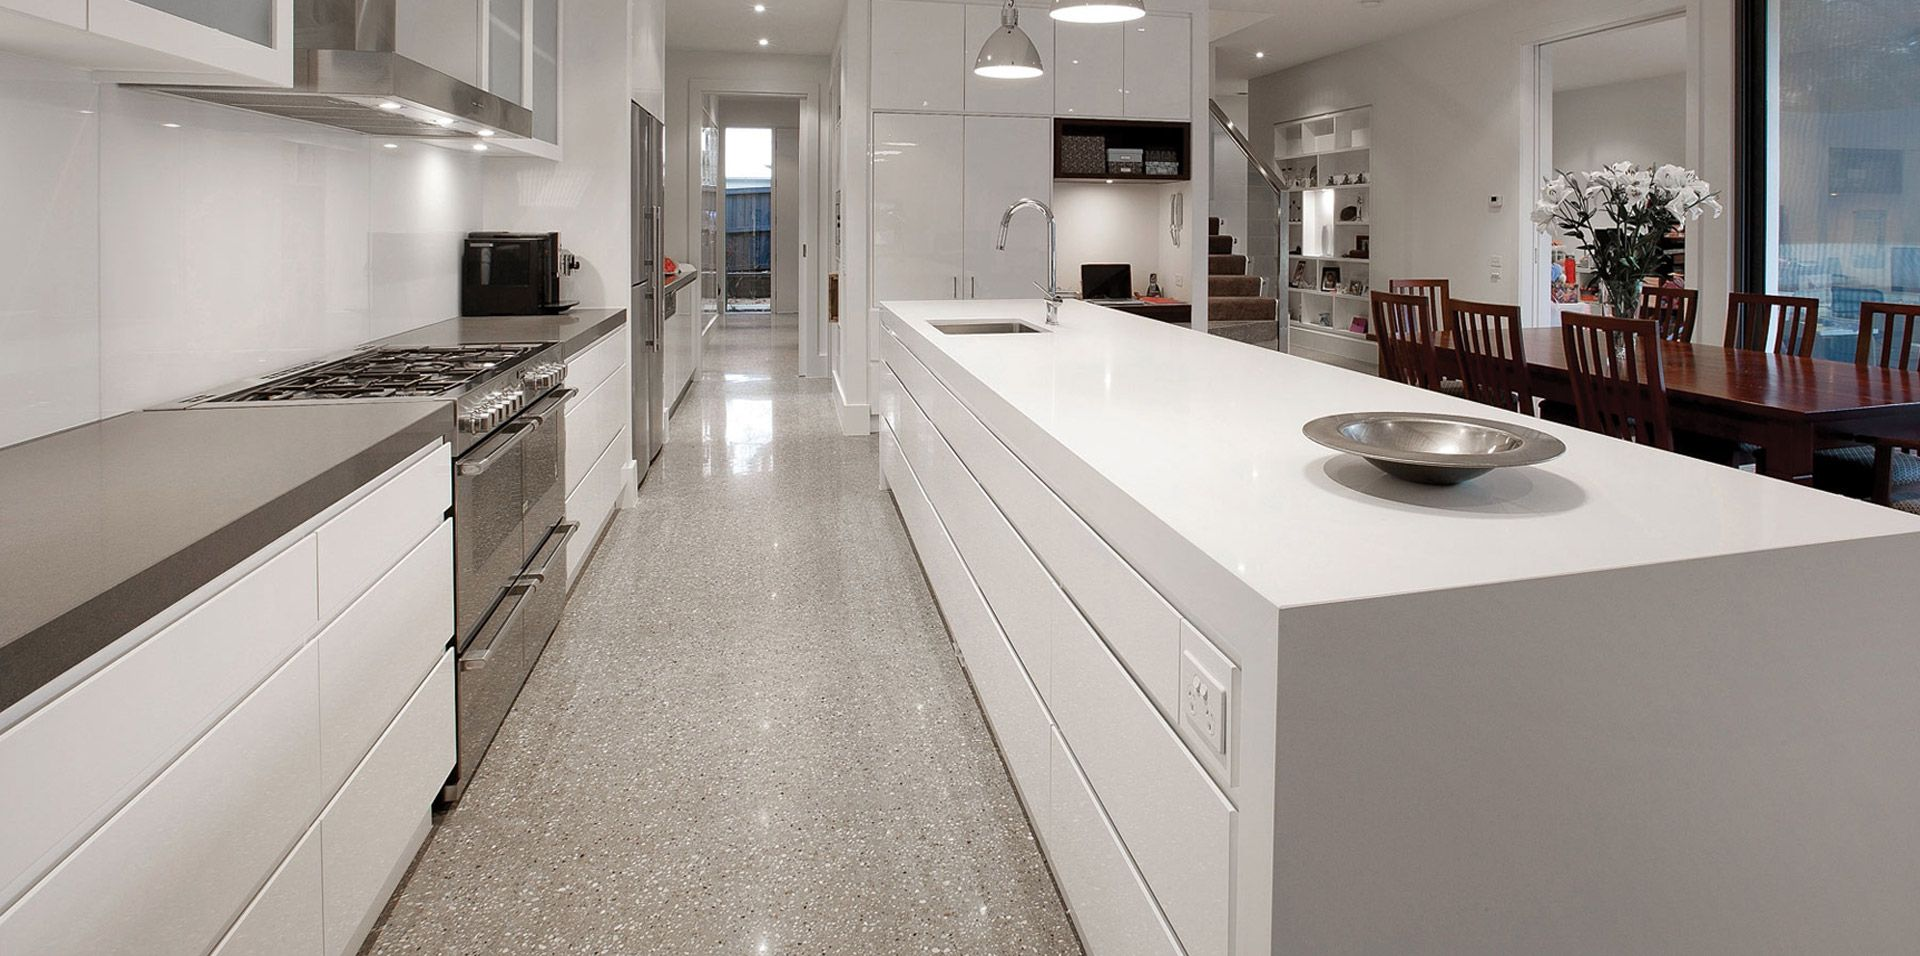 Kitchen galerie is melbourne cabinet makers that designs builds and installs custom built kitchens bathrooms